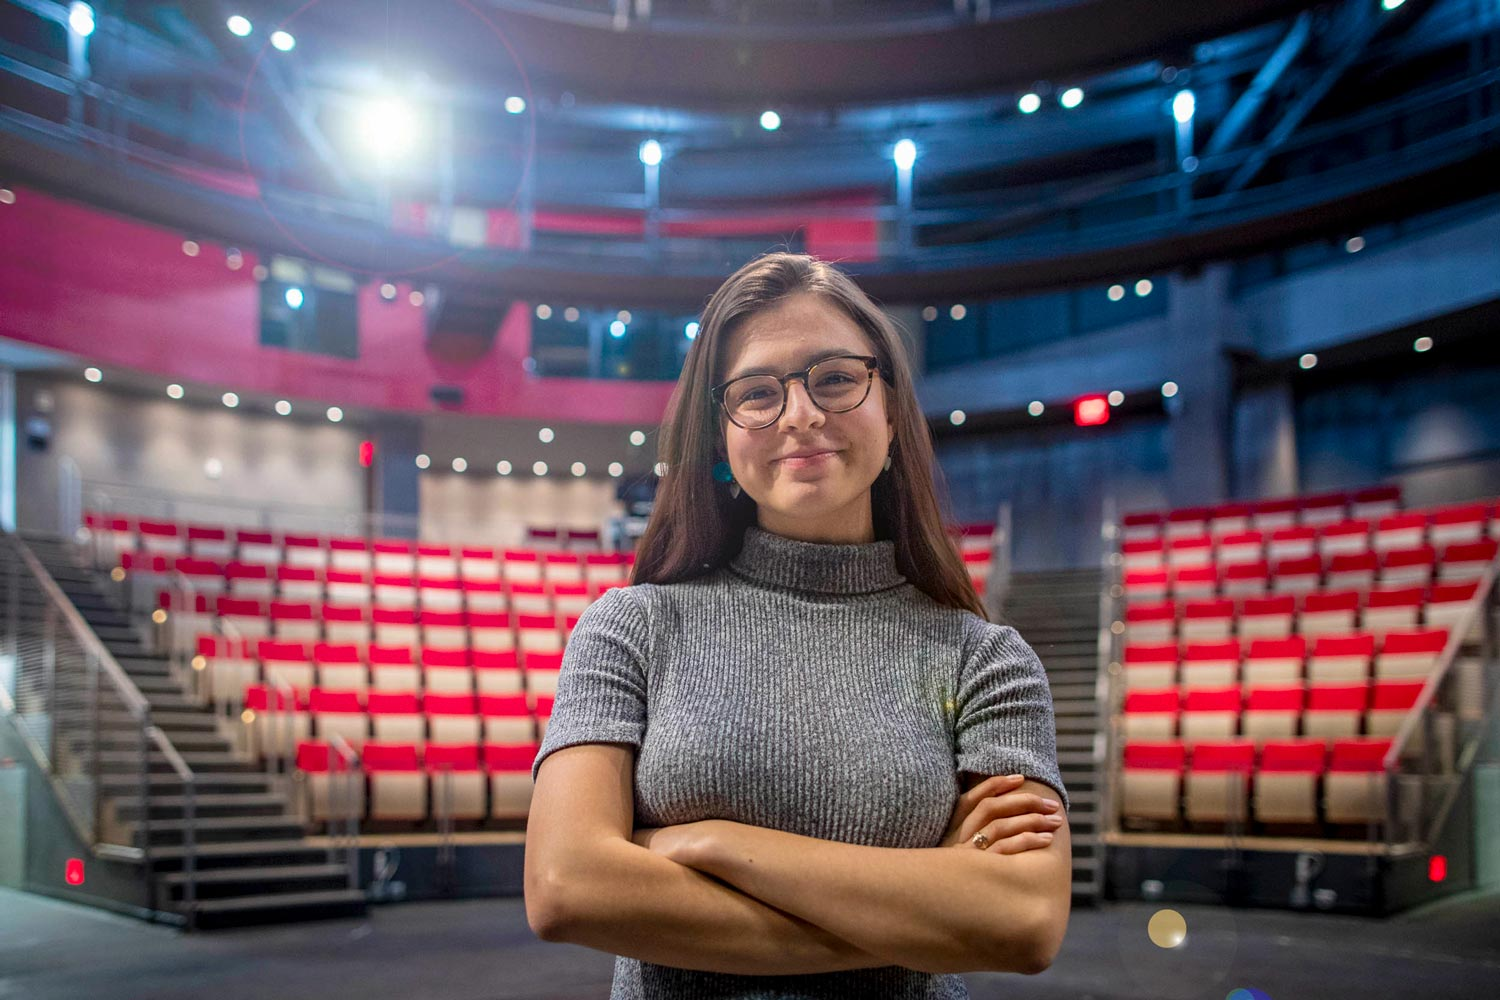 Payton Moledor plans to study acting and attend as many productions as she can while spending three months in London this fall.